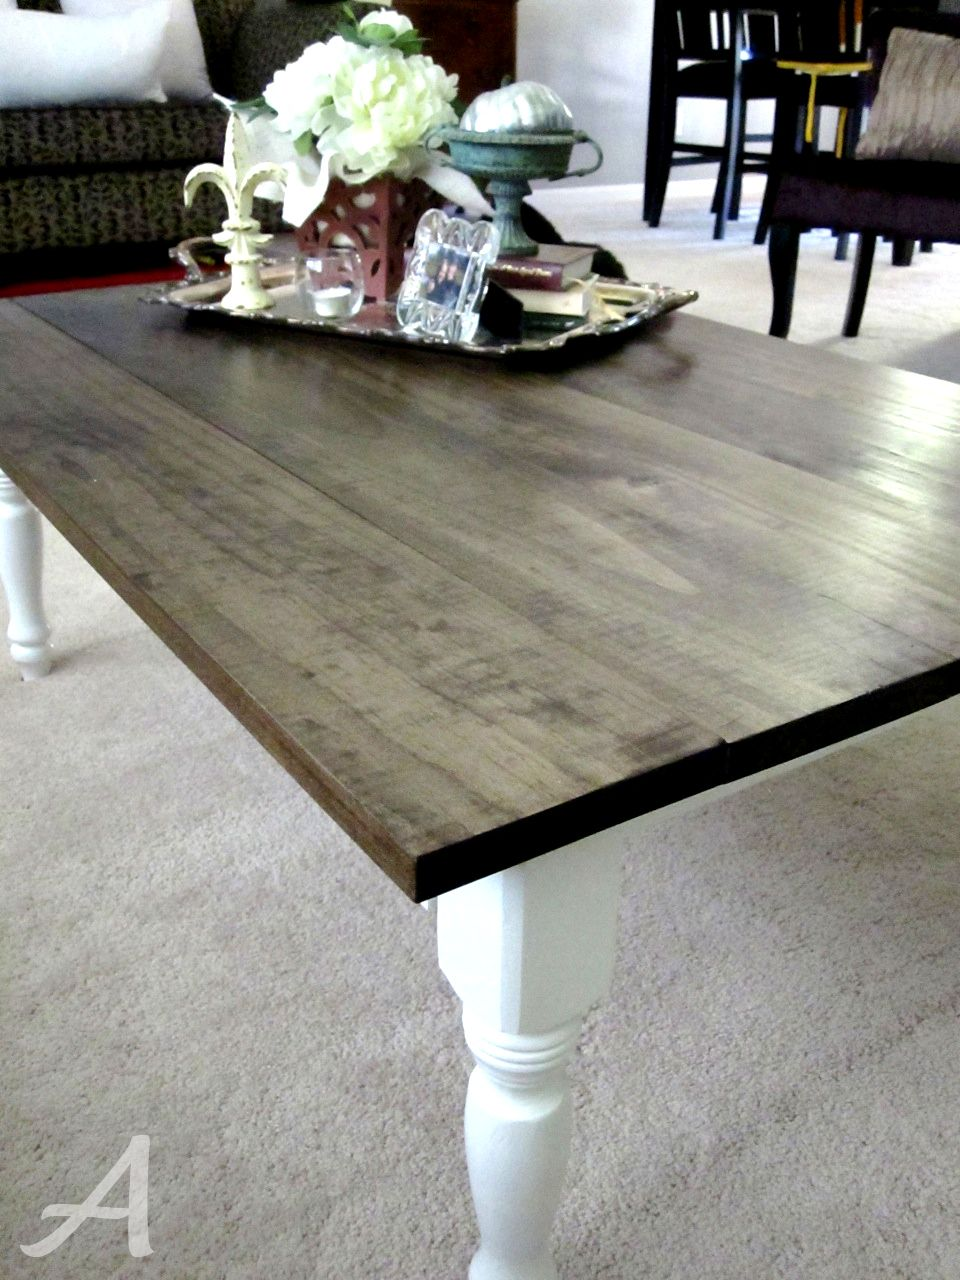 Refinish cheap dining table as desk w dark top & white